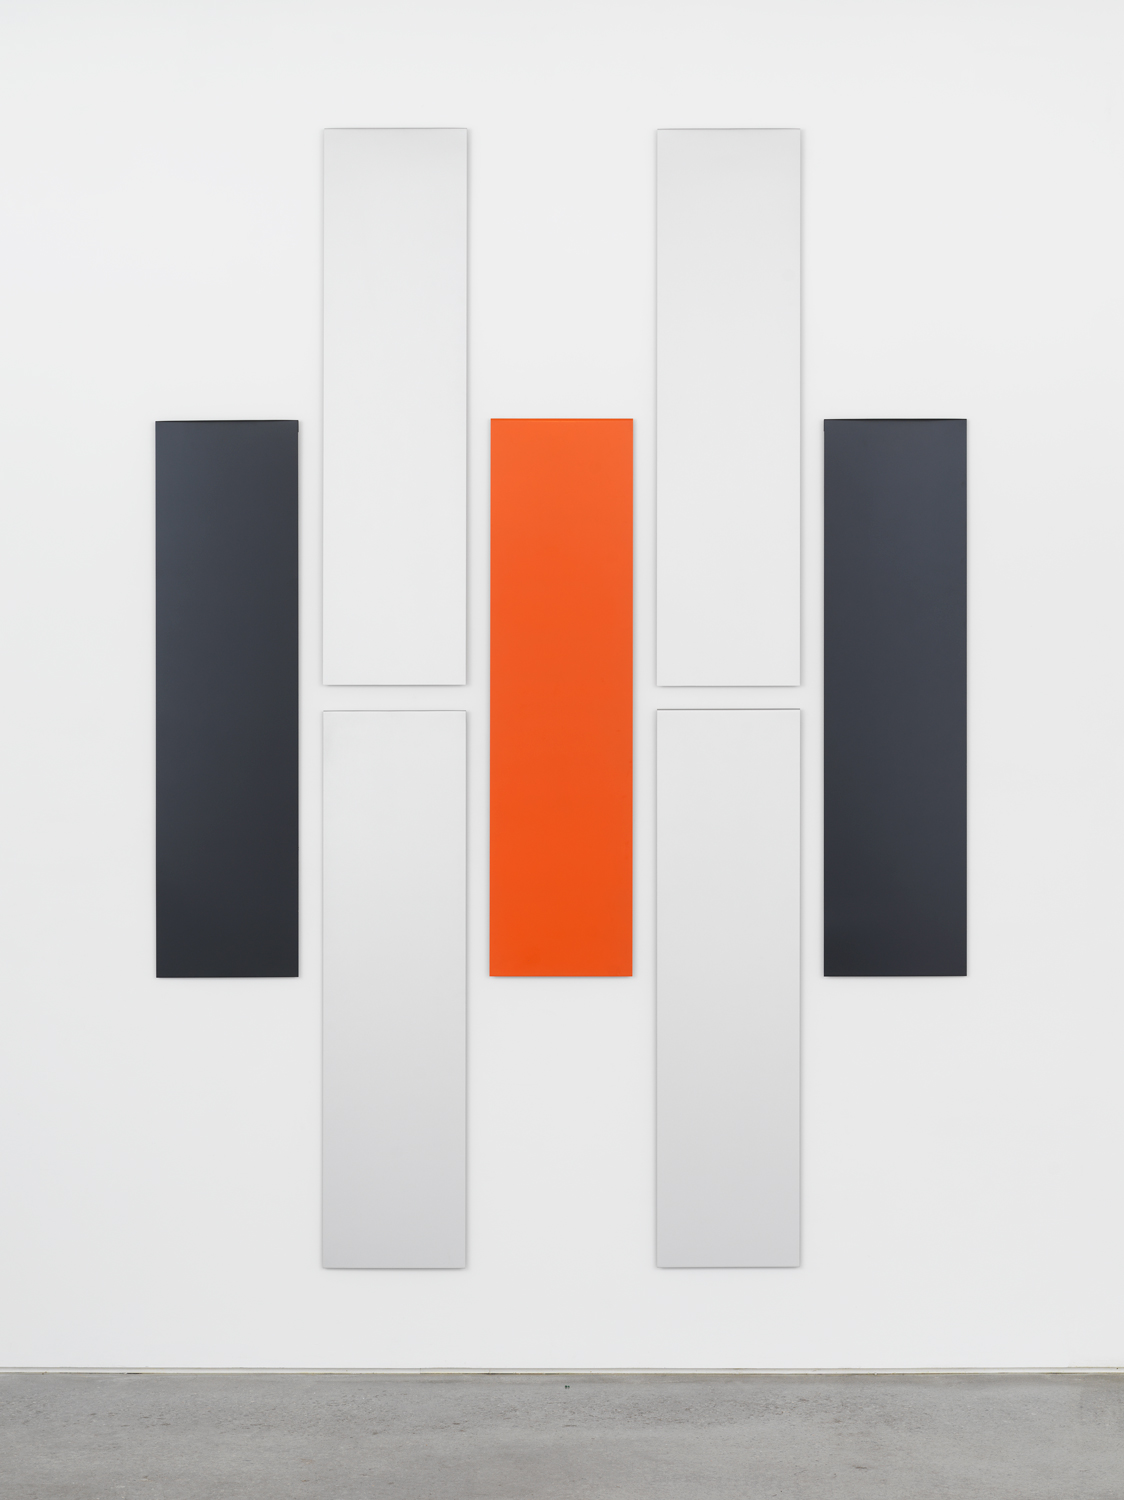 Don Dudley, Untitled (Aluminum Module), 1974-2019, acrylic lacquer on aluminum, each module 46.75h x 12w in; overall 95.5h x 68w in.